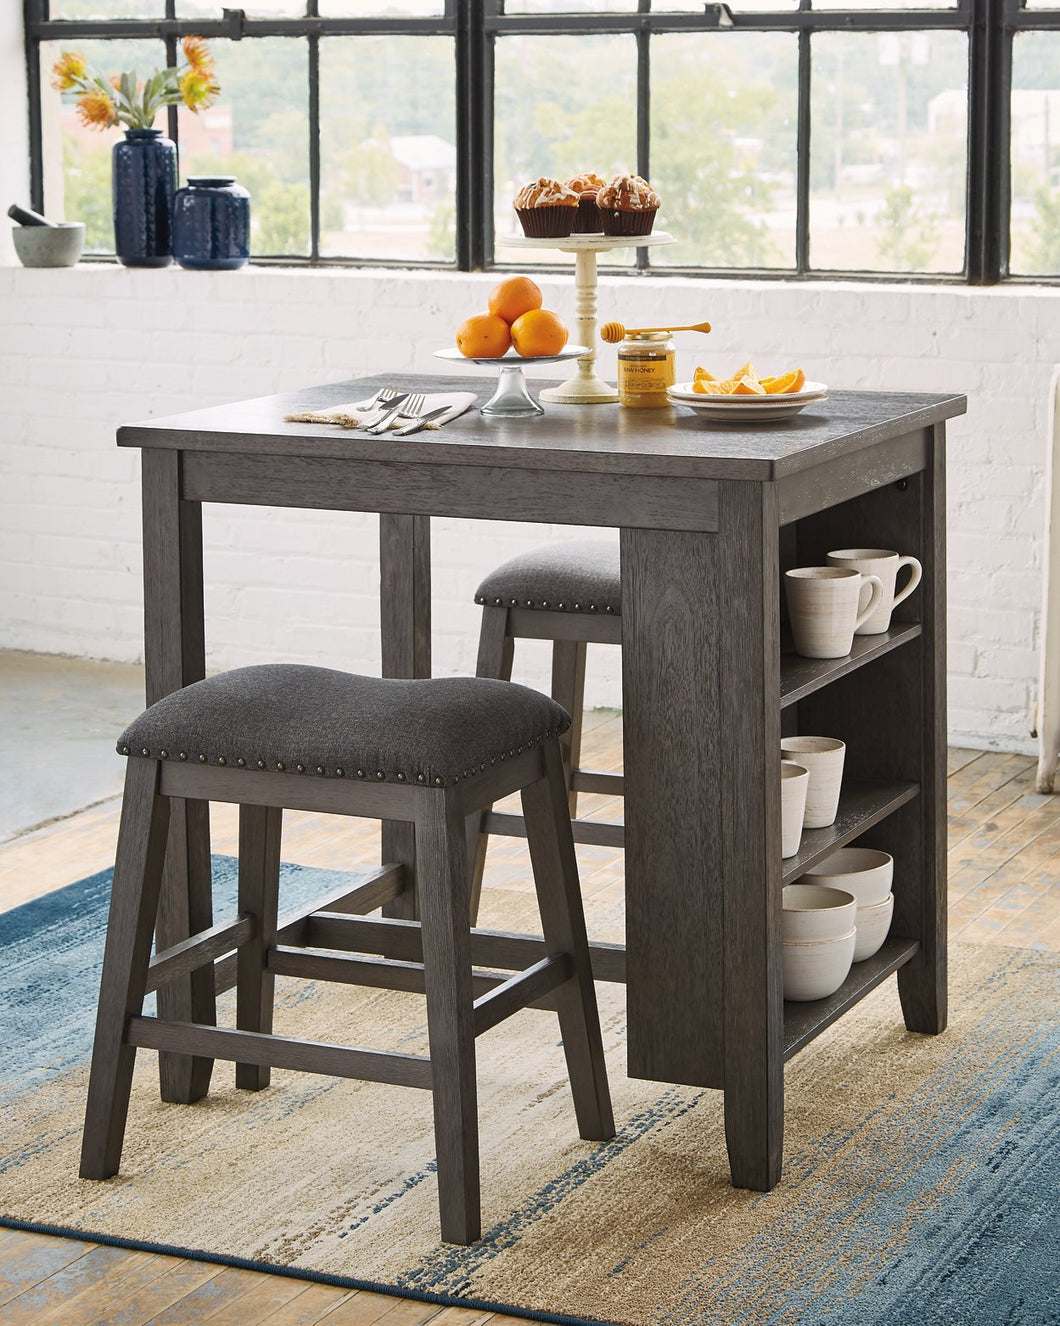 Caitbrook Signature Design by Ashley Counter Height Table set of 3 image